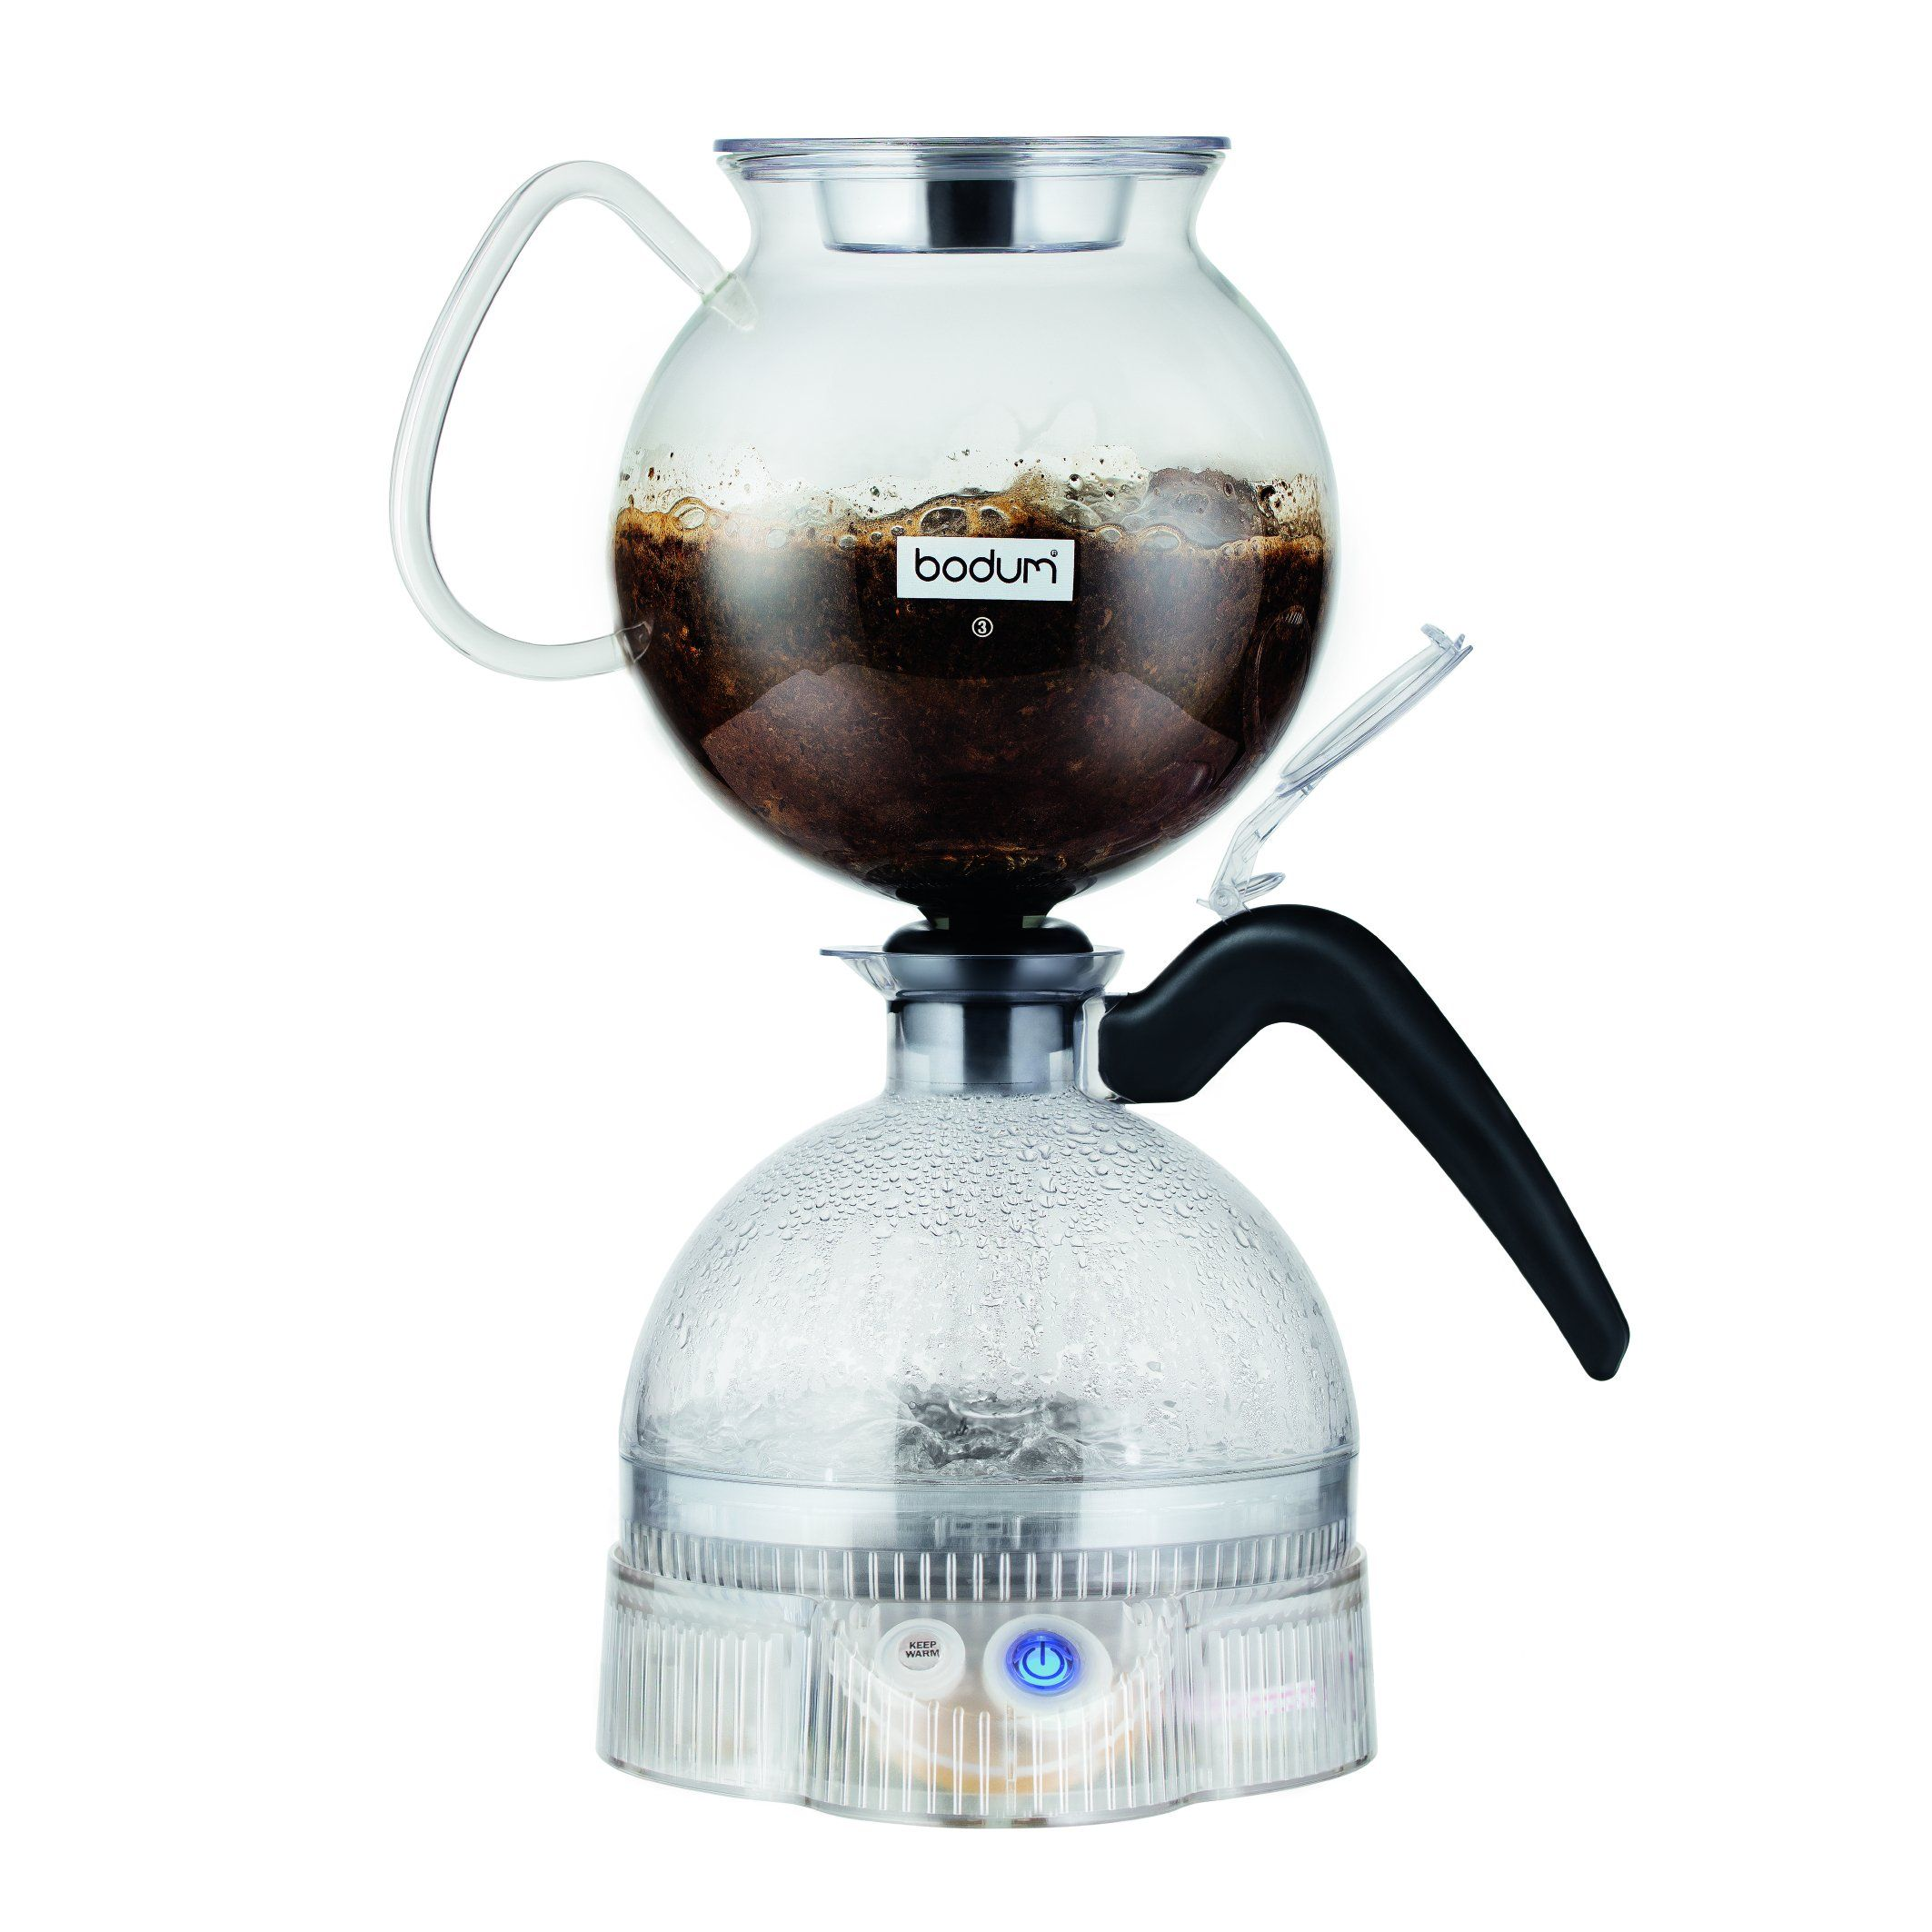 Bodum Epebo Coffee Maker, Electric Vacuum Coffee Maker, Siphon Coffee